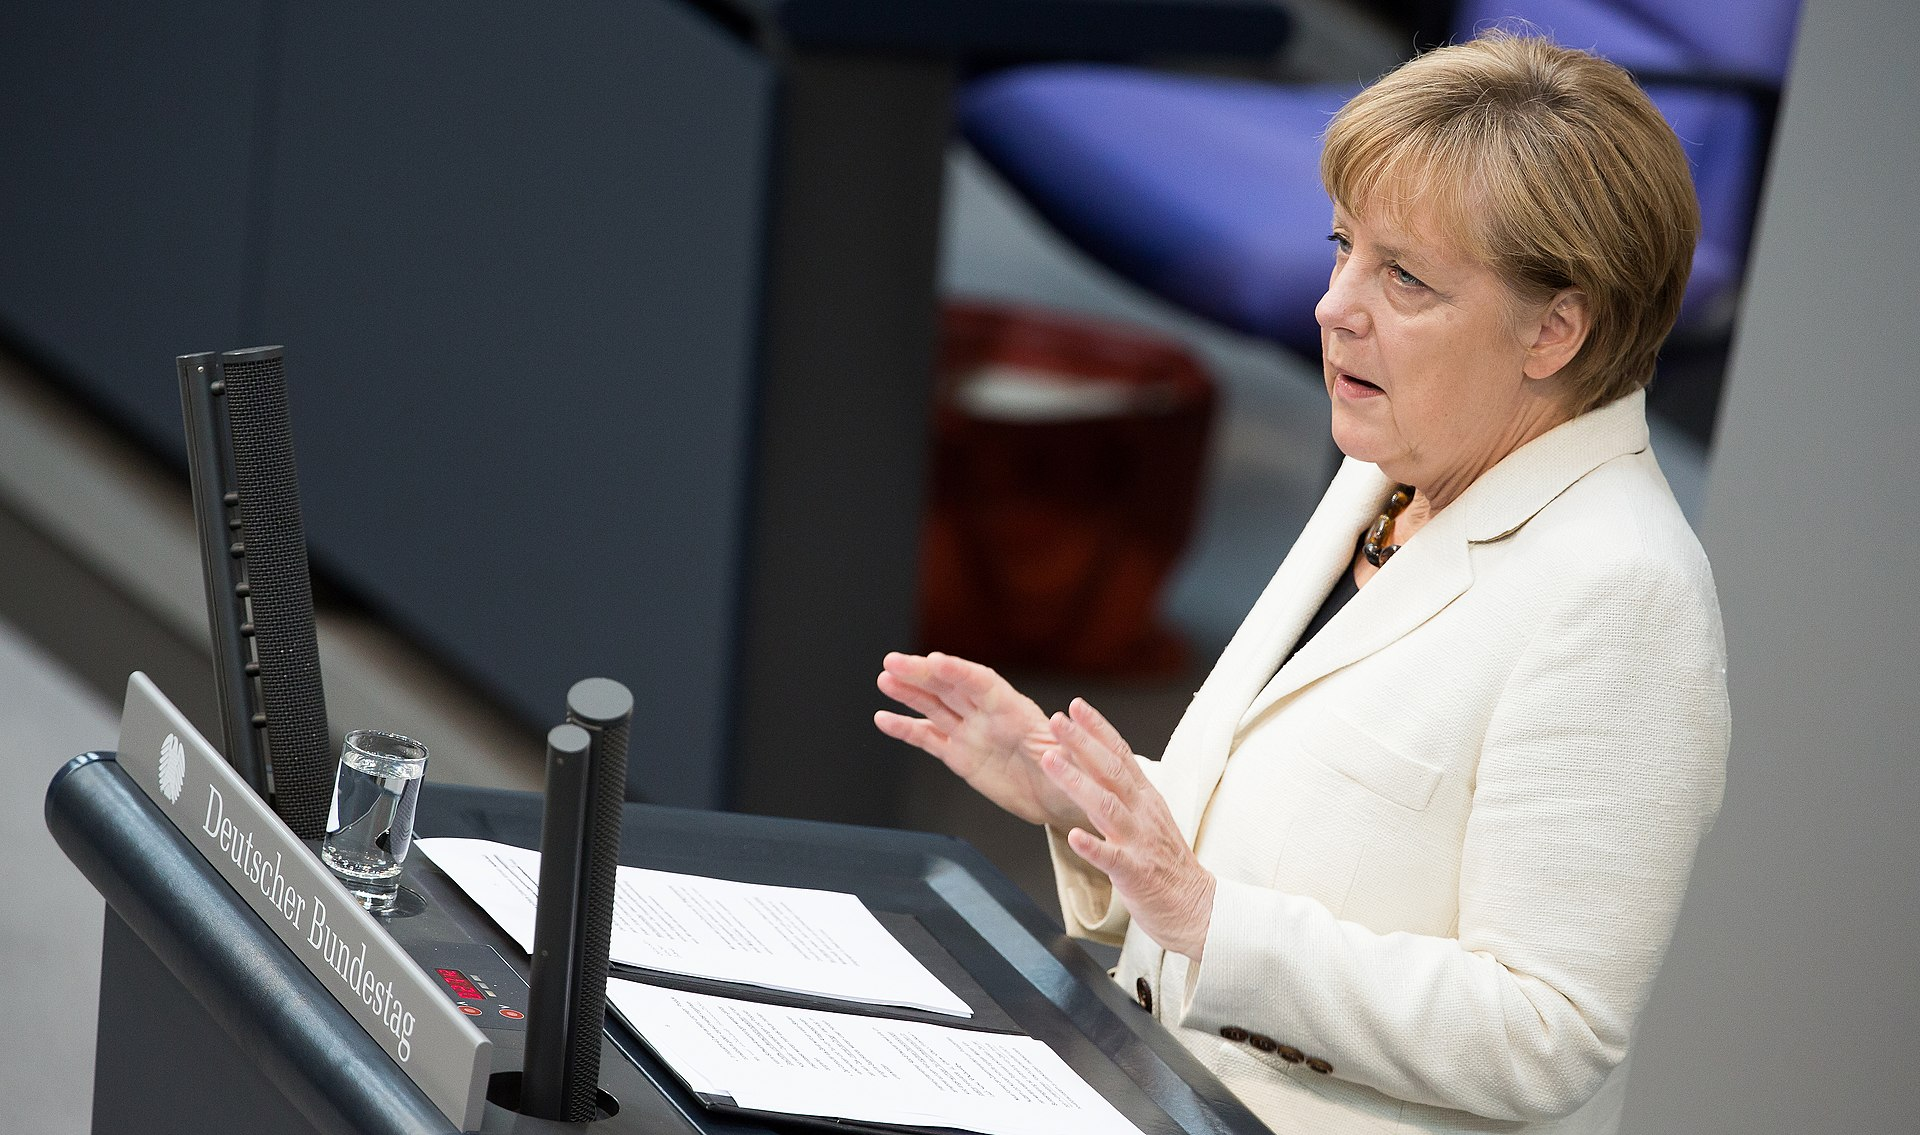 Merkel addresses the Bundestag